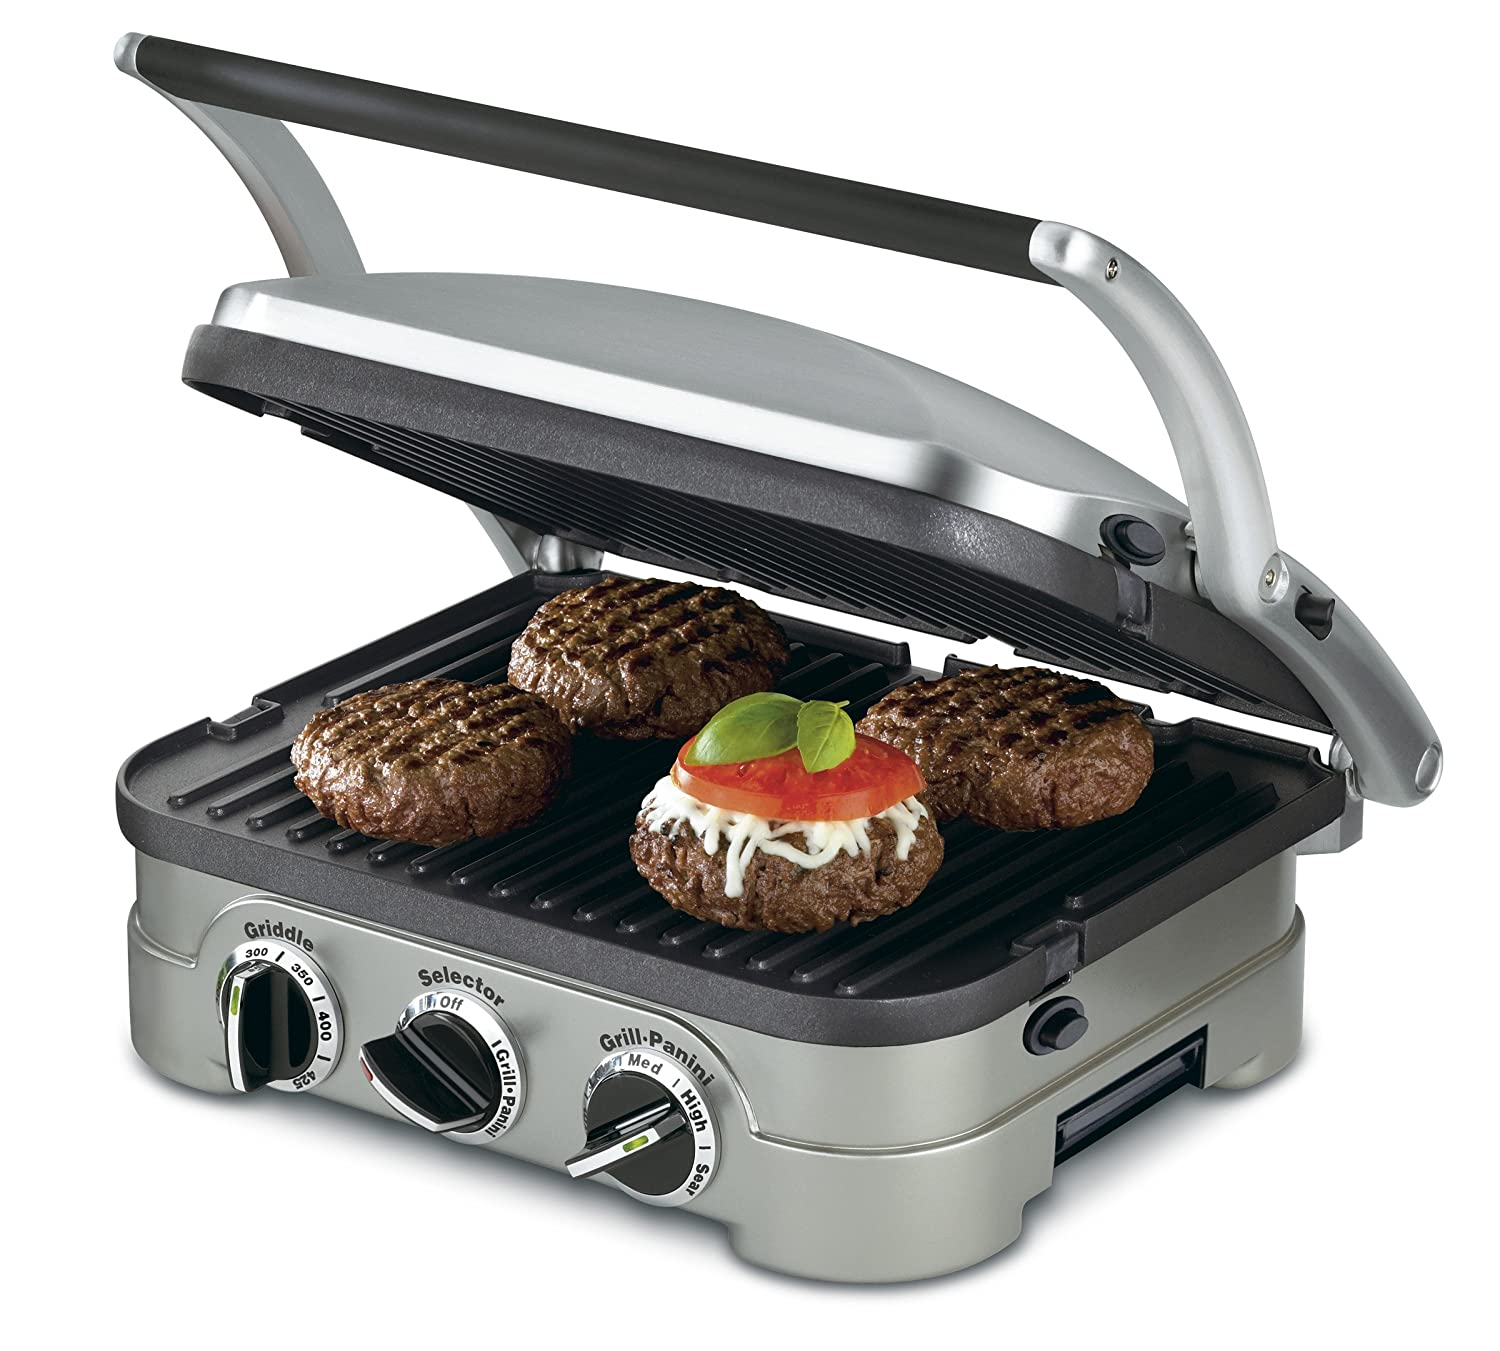 Cuisinart GR-4N 5-in-1 Griddler $79.95